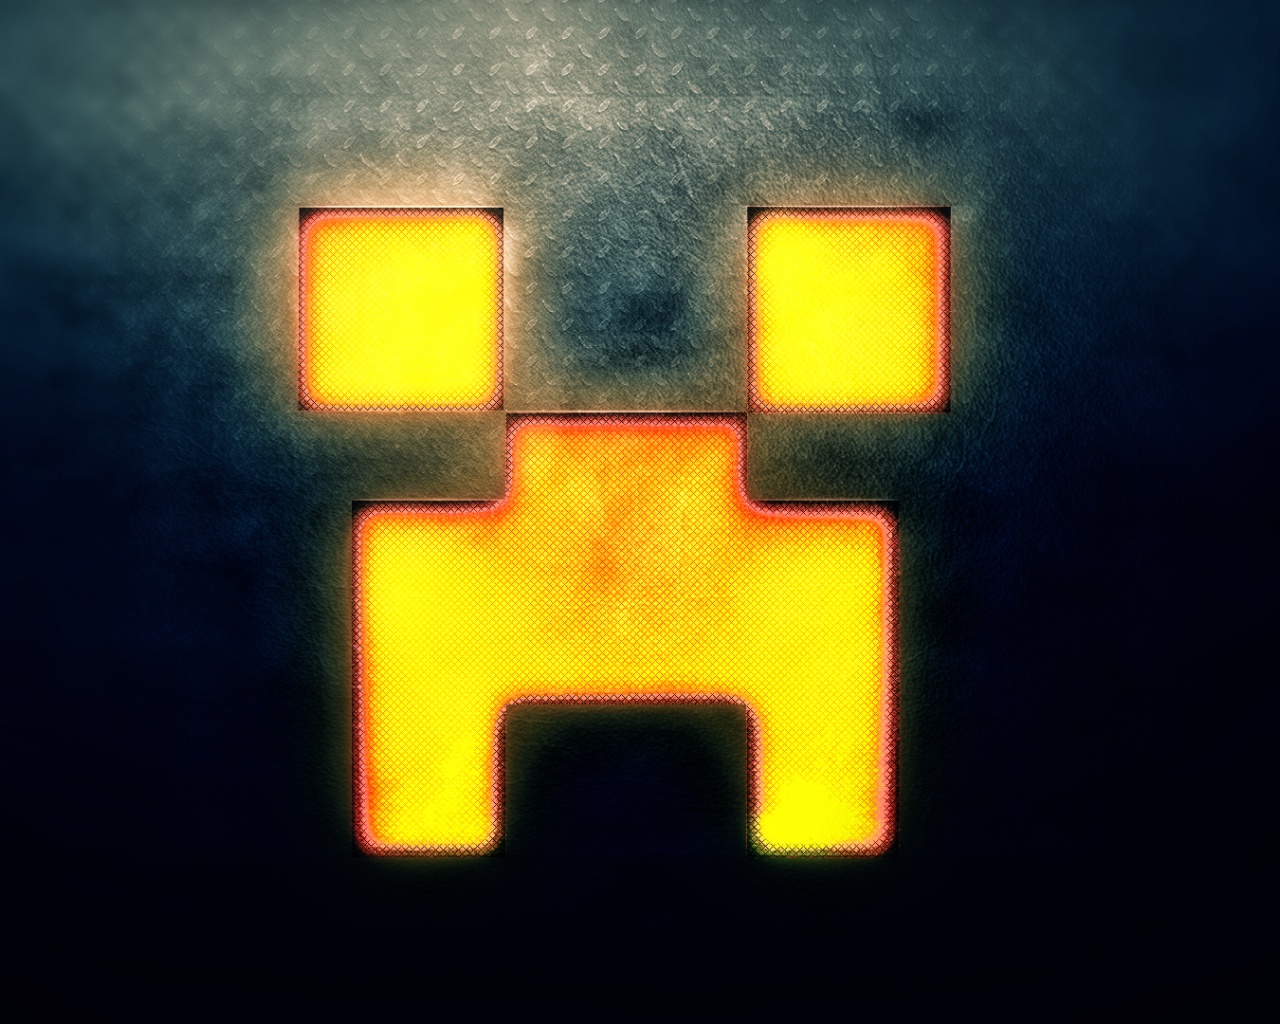 wallpaper minecraft for pc